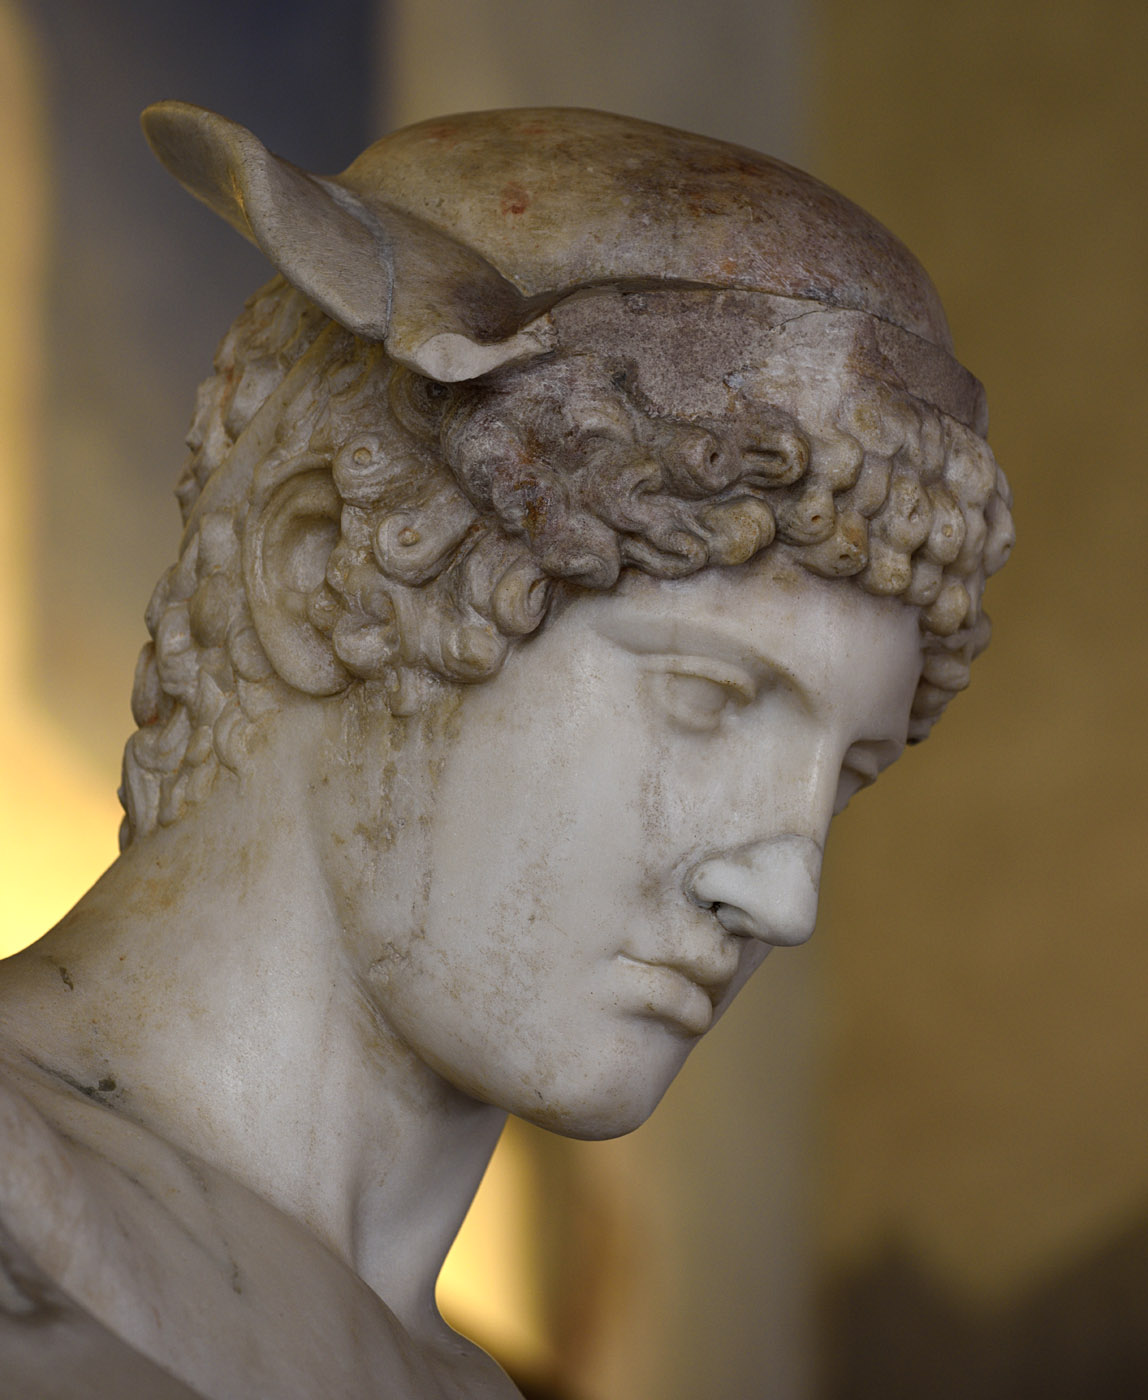 Hermes Loghios (close-up). Medium-grained (Pentelic) marble. Roman copy  2nd cent. CE after a Greek original of the 5th cent. BCE ascribed to Phidias. Inv. No. 8624. Rome, Roman National Museum, Palazzo Altemps